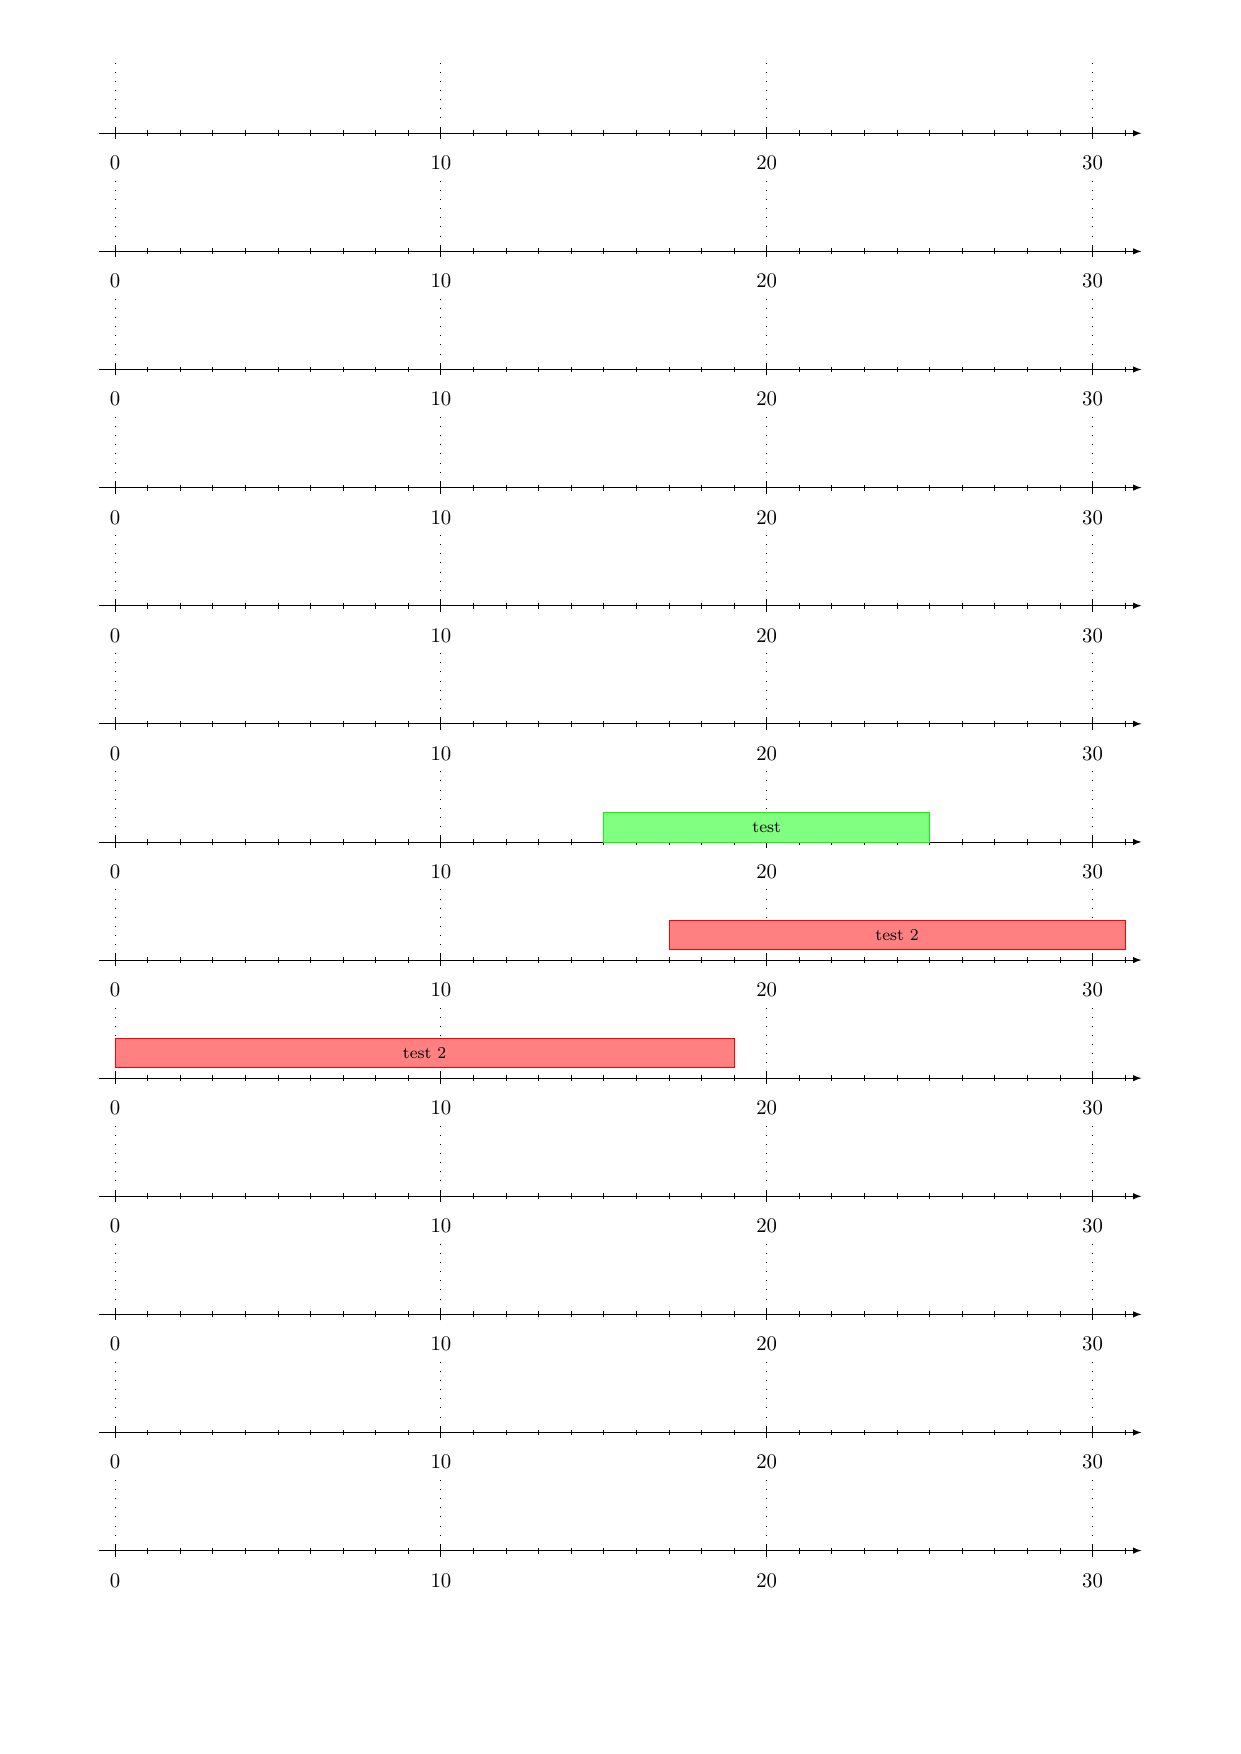 time-multiple-lines+timeline+set+pgf+foreach+command+scope+text